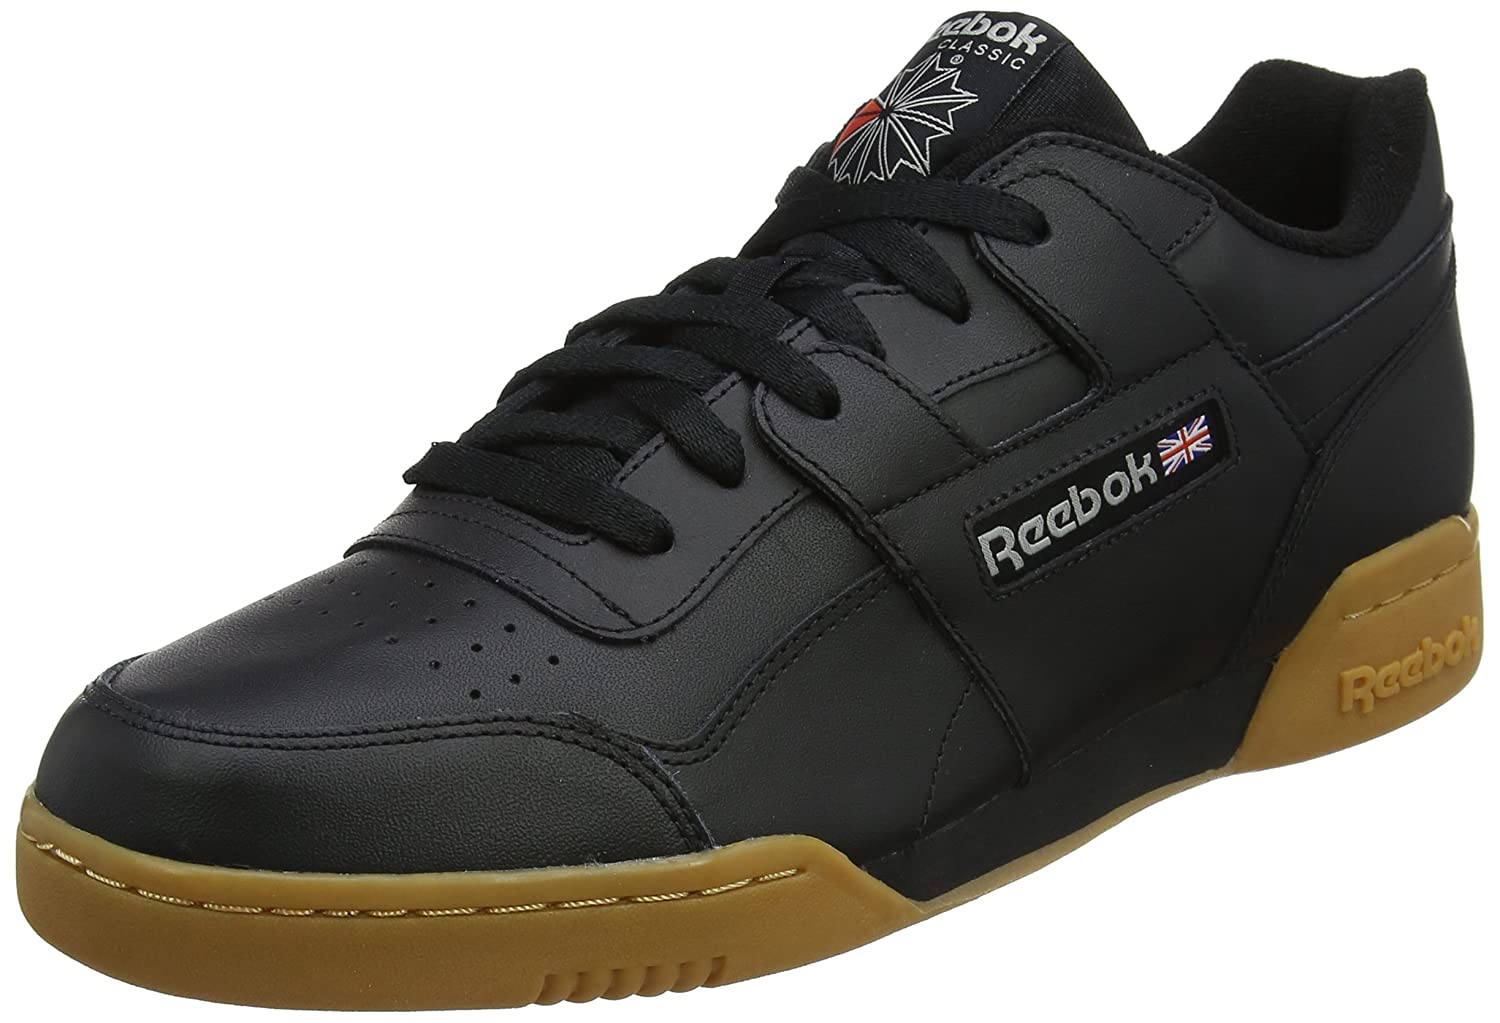 Noir (noir Carbon Classic rouge Reebok Royal Gu 000) Reebok Workout Plus, Chaussures de Fitness Homme 44.5 EU